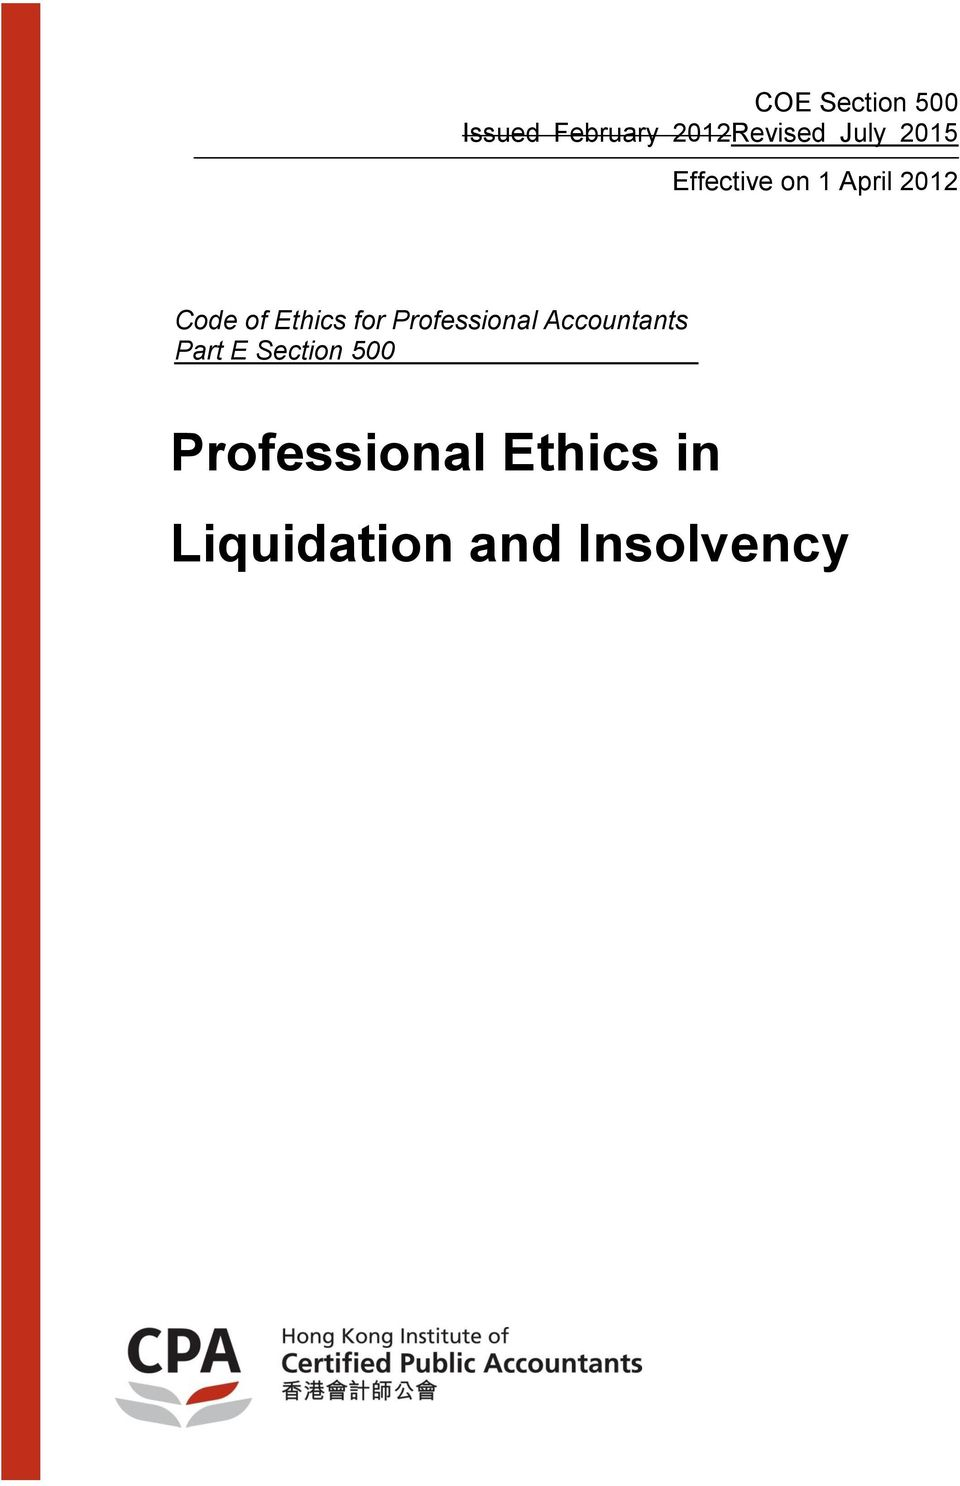 Ethics for Professional Accountants Part E